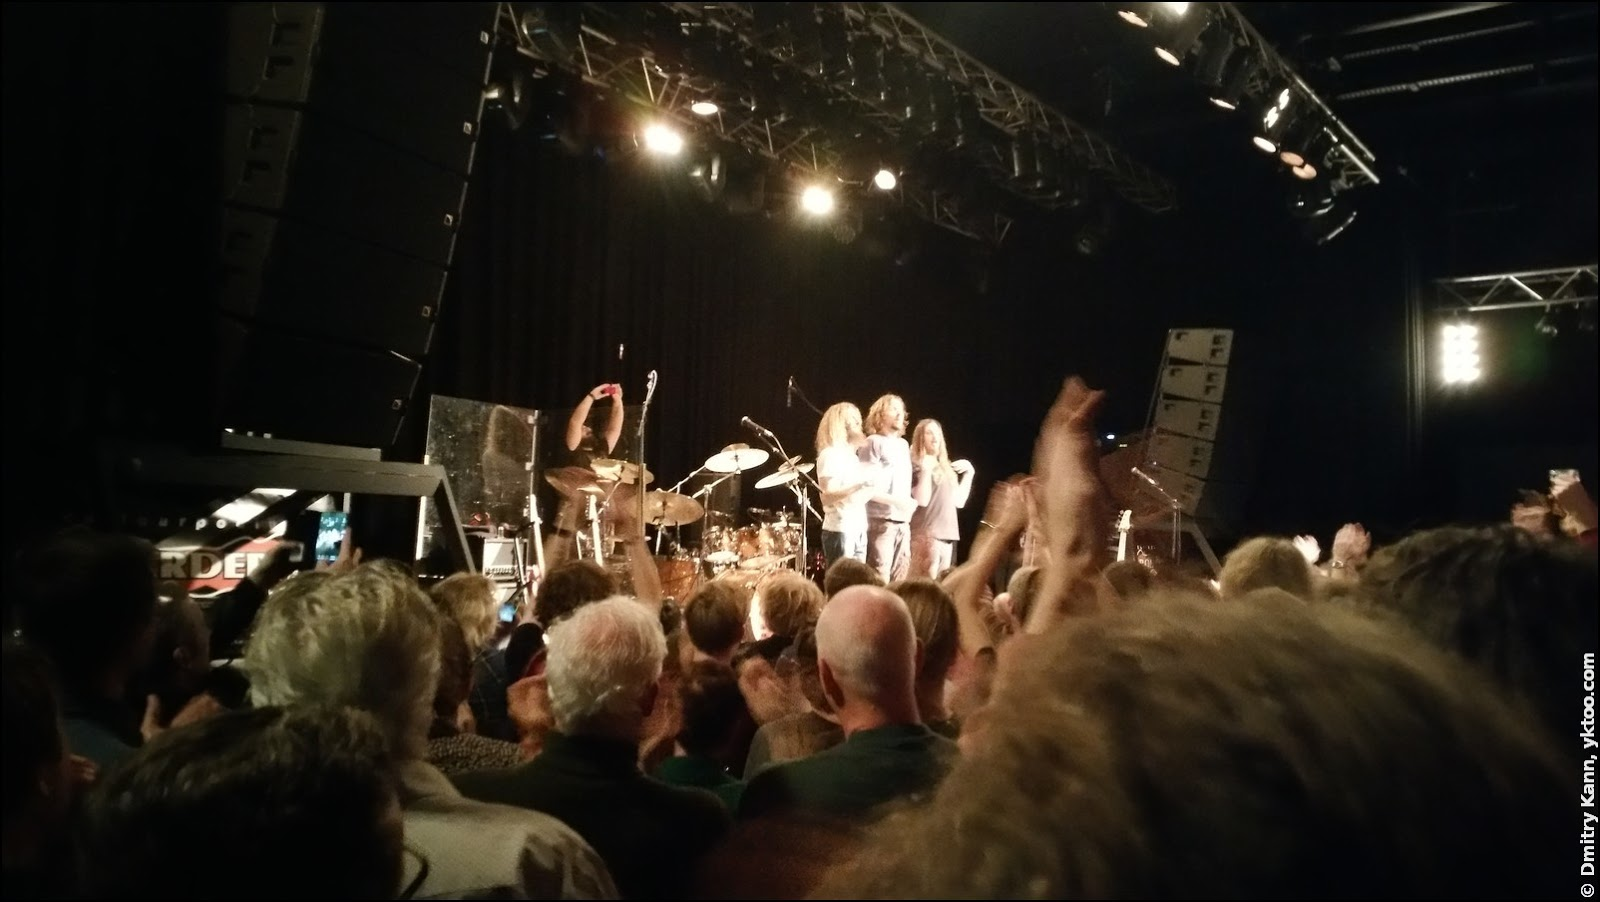 The Aristocrats, left to right: Guthrie Govan, Marco Minnemann, Bryan Beller.